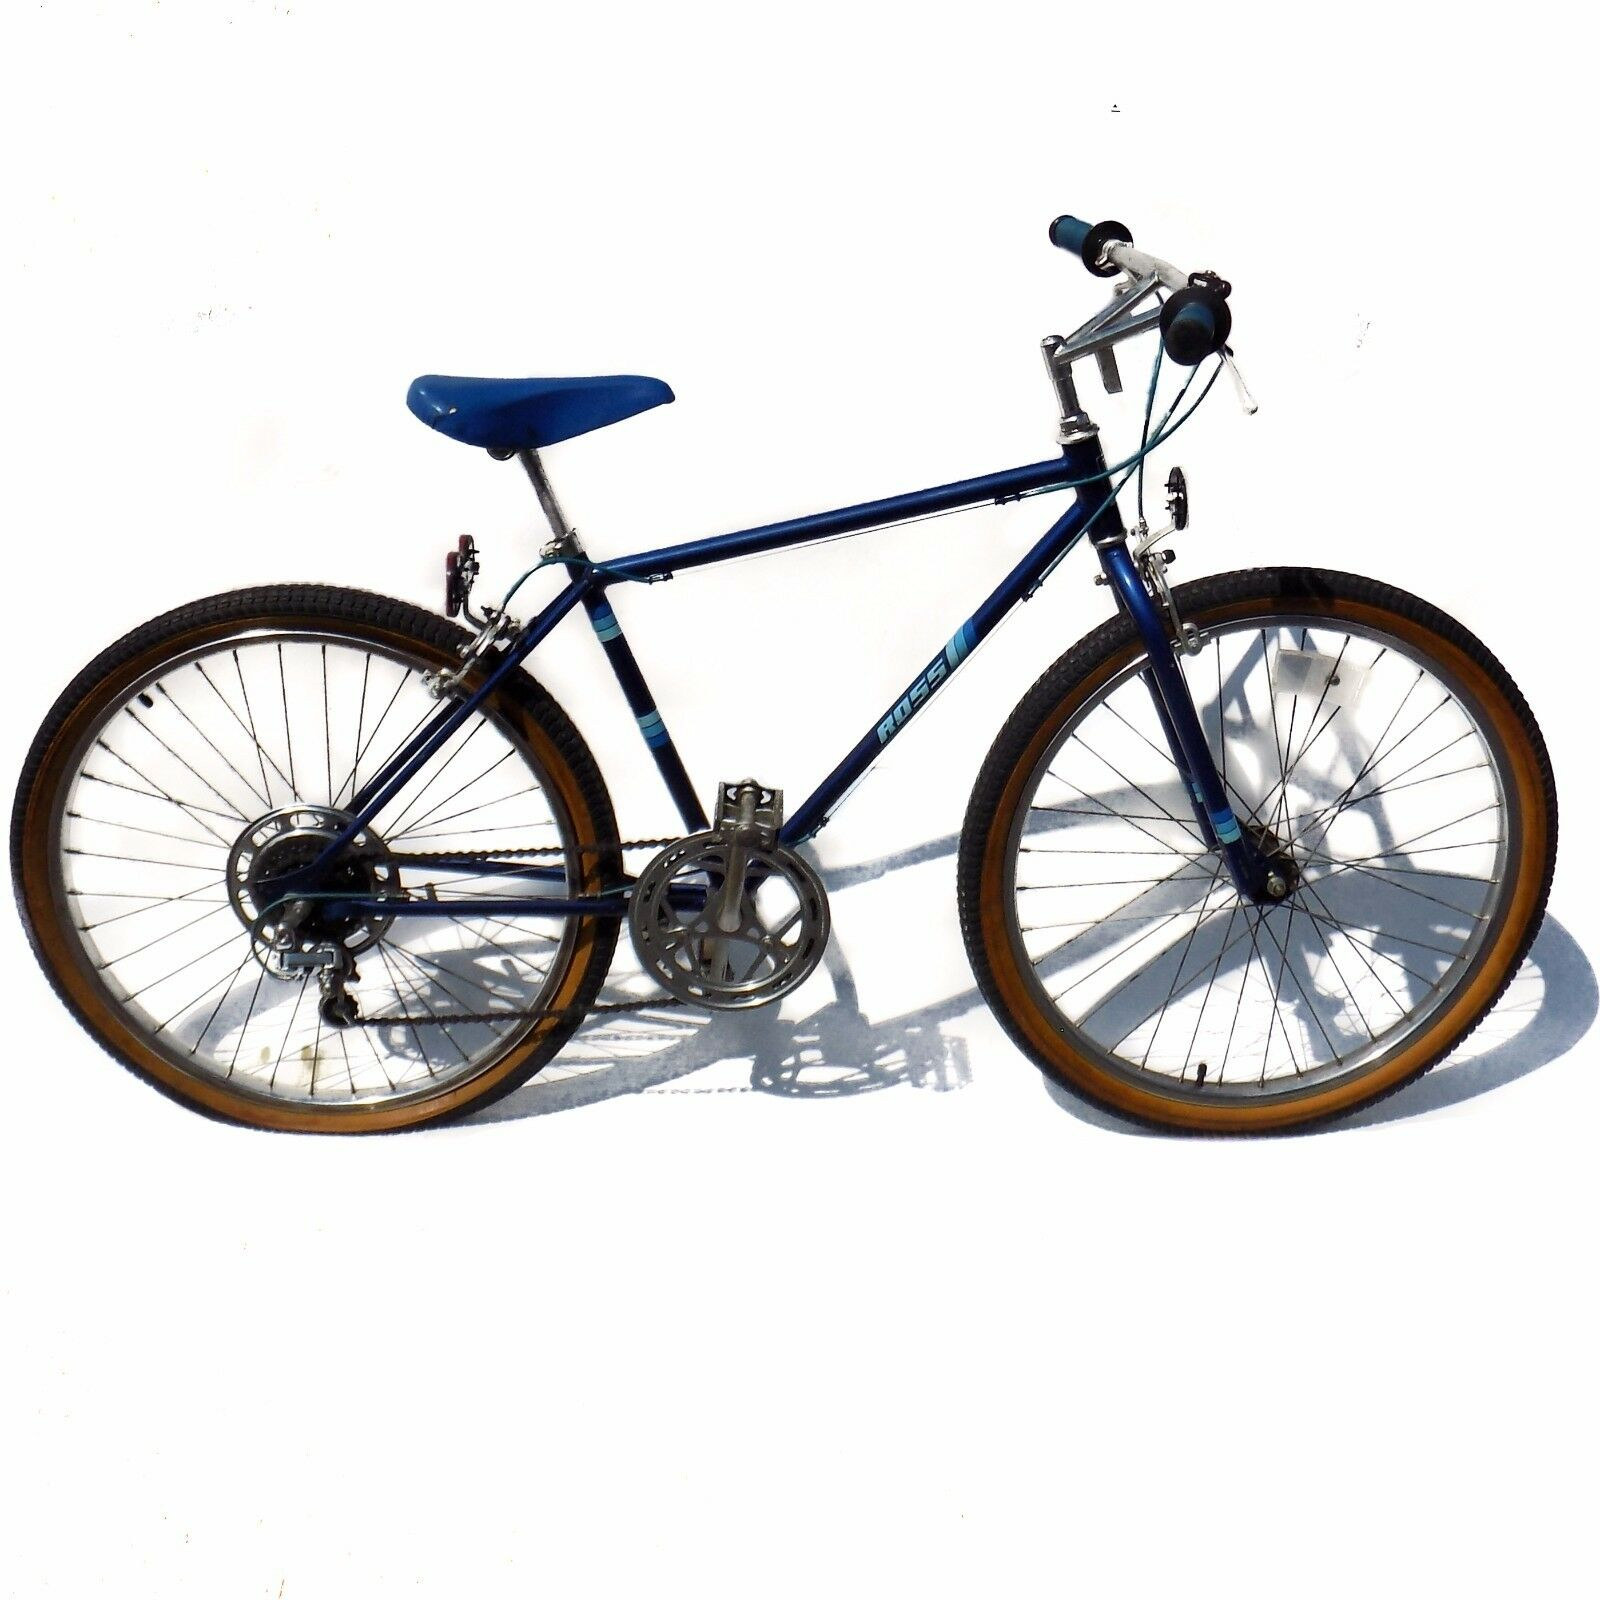 1984 Ross Curb Crusher Mountain Bike Vintage bluee MTB 26  Bicycle 5 Speed